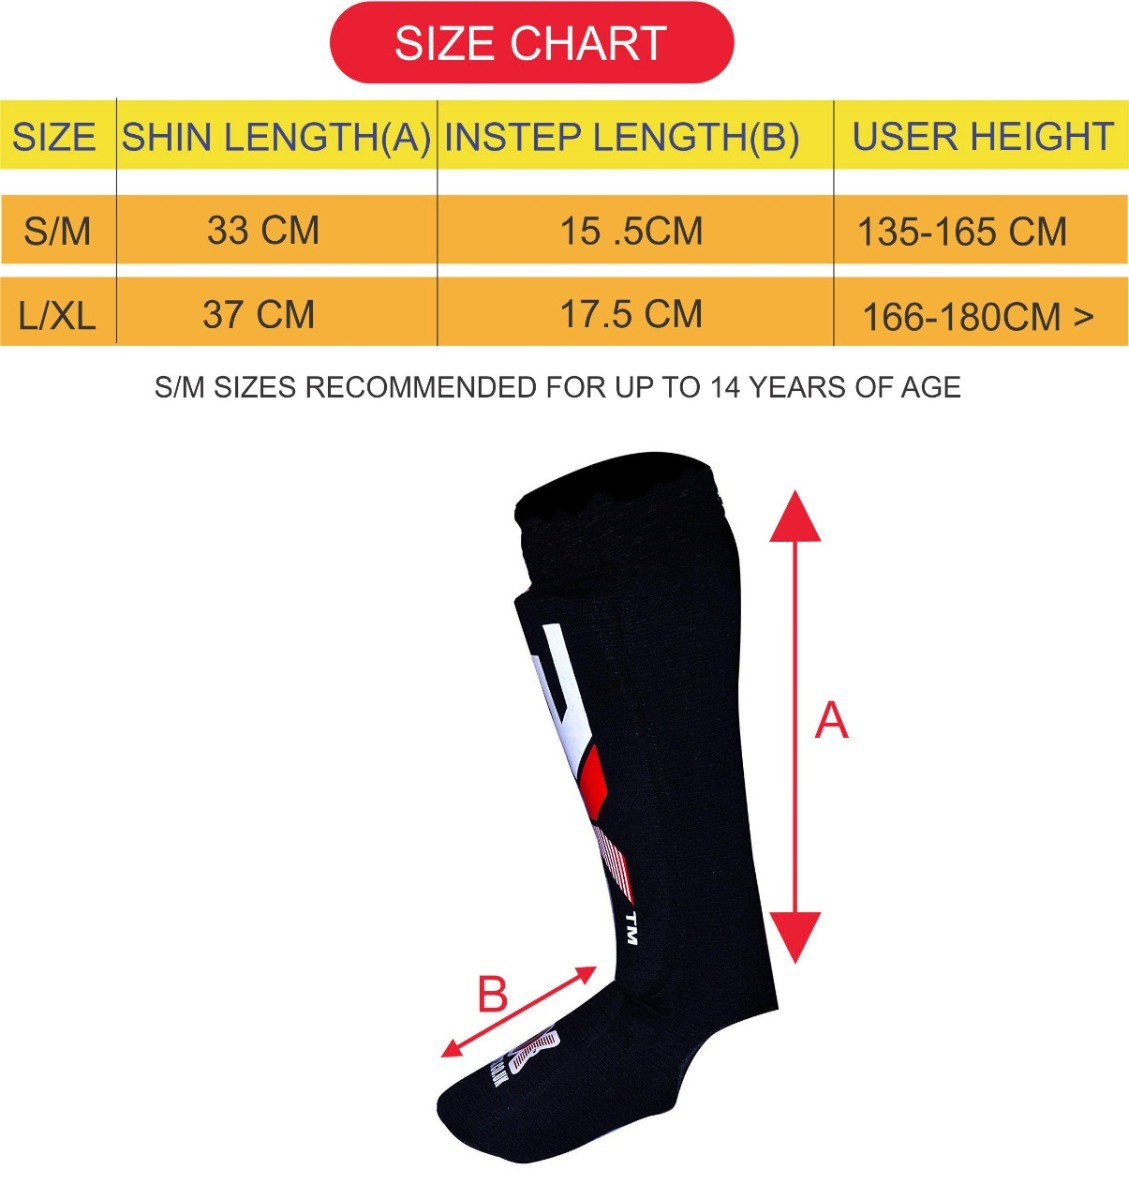 3X Sports Professional Choice SP-3X-02 Shin Instep Pad-1384